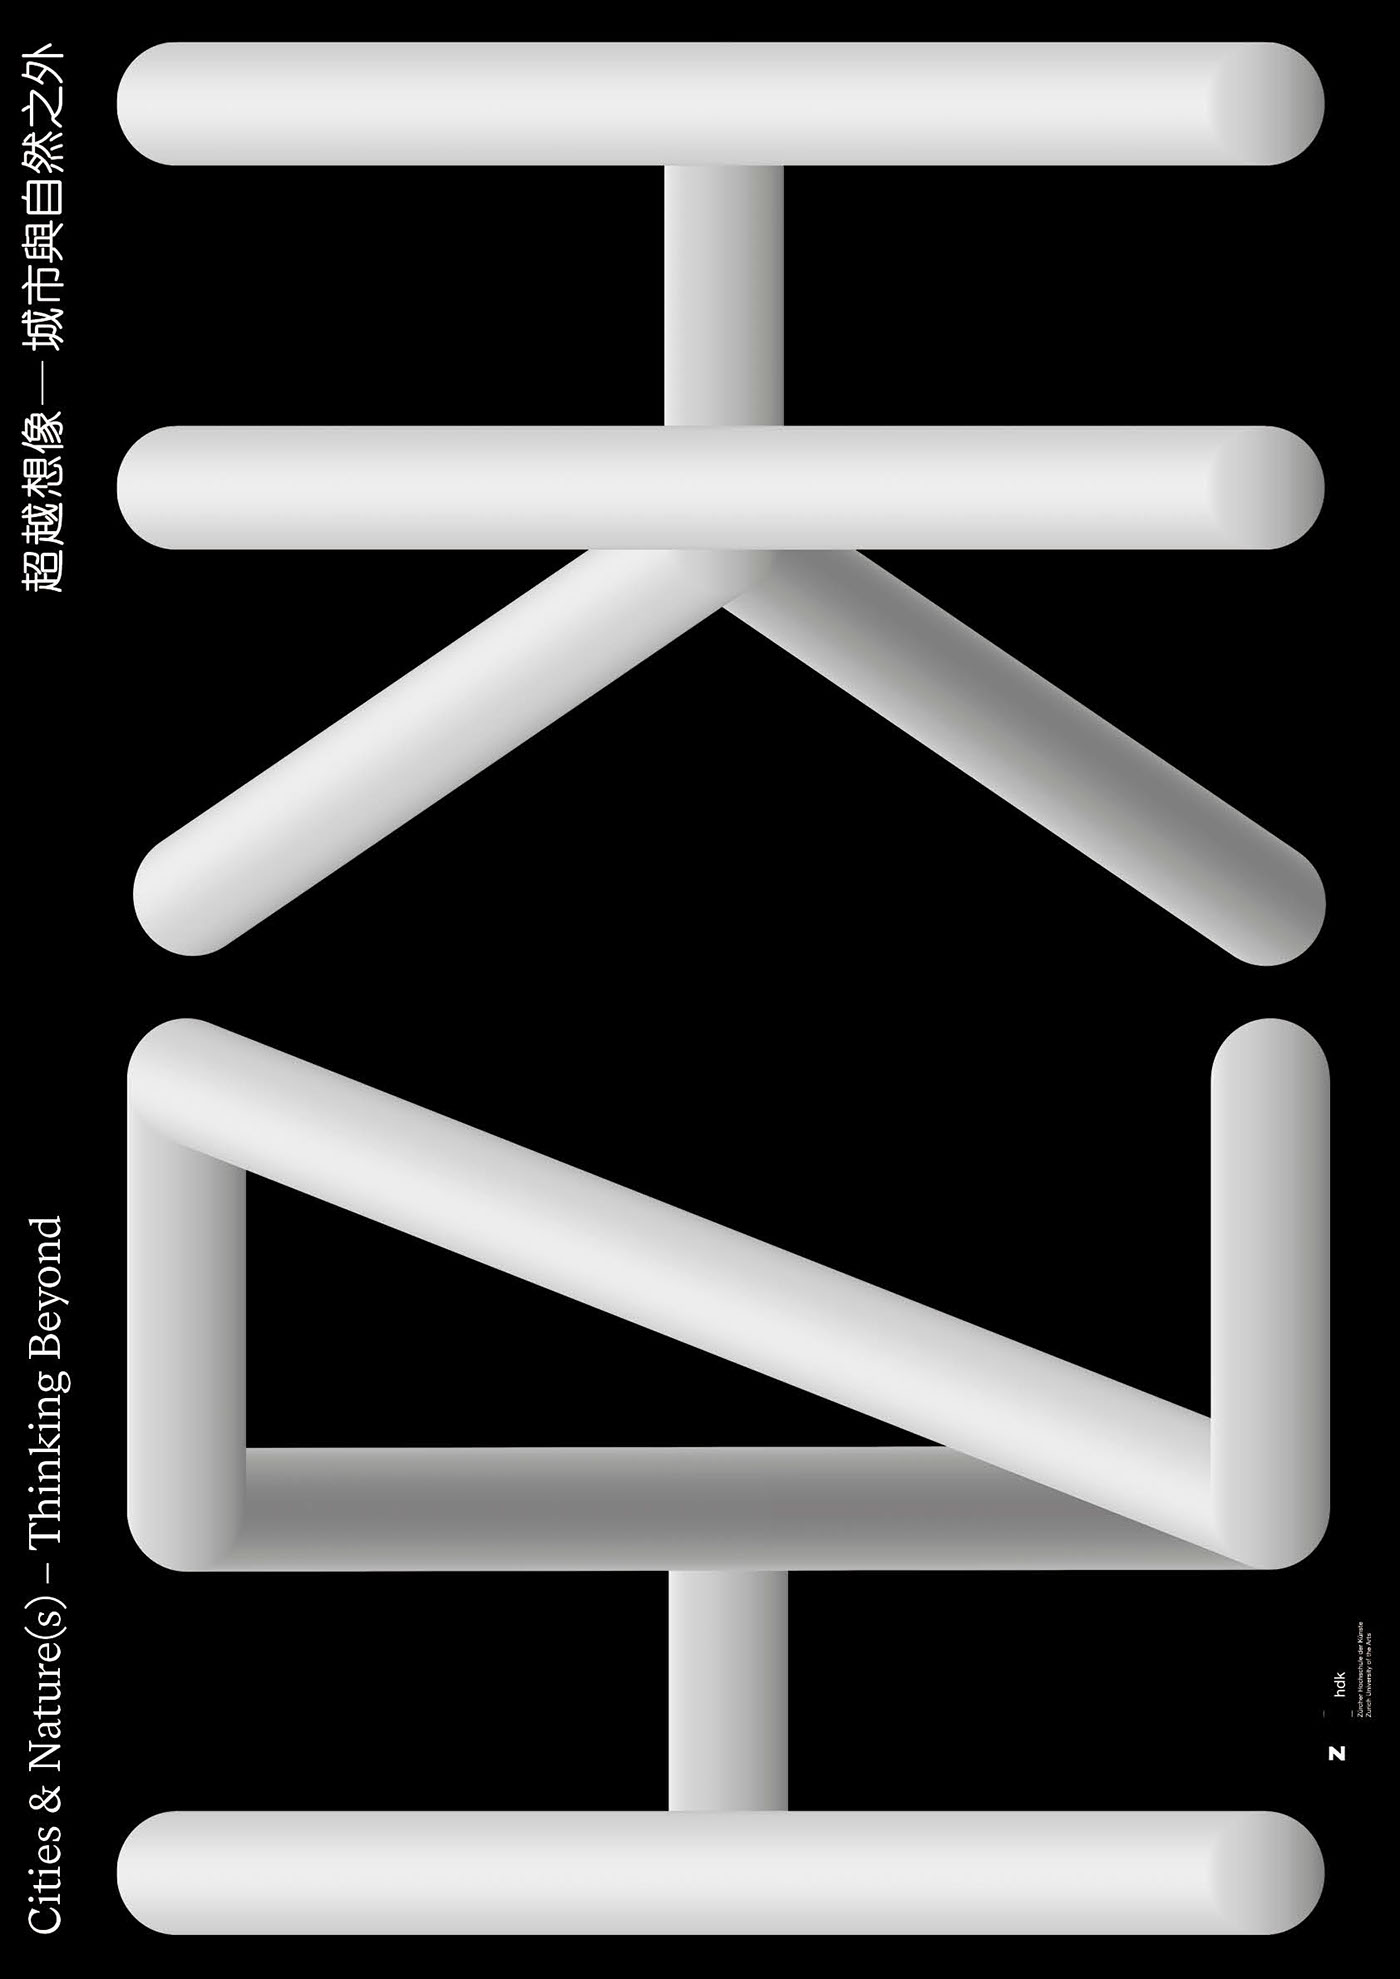 graphicdesign typography   poster ArtDirection culture hongkong Zurich design Invitation publication